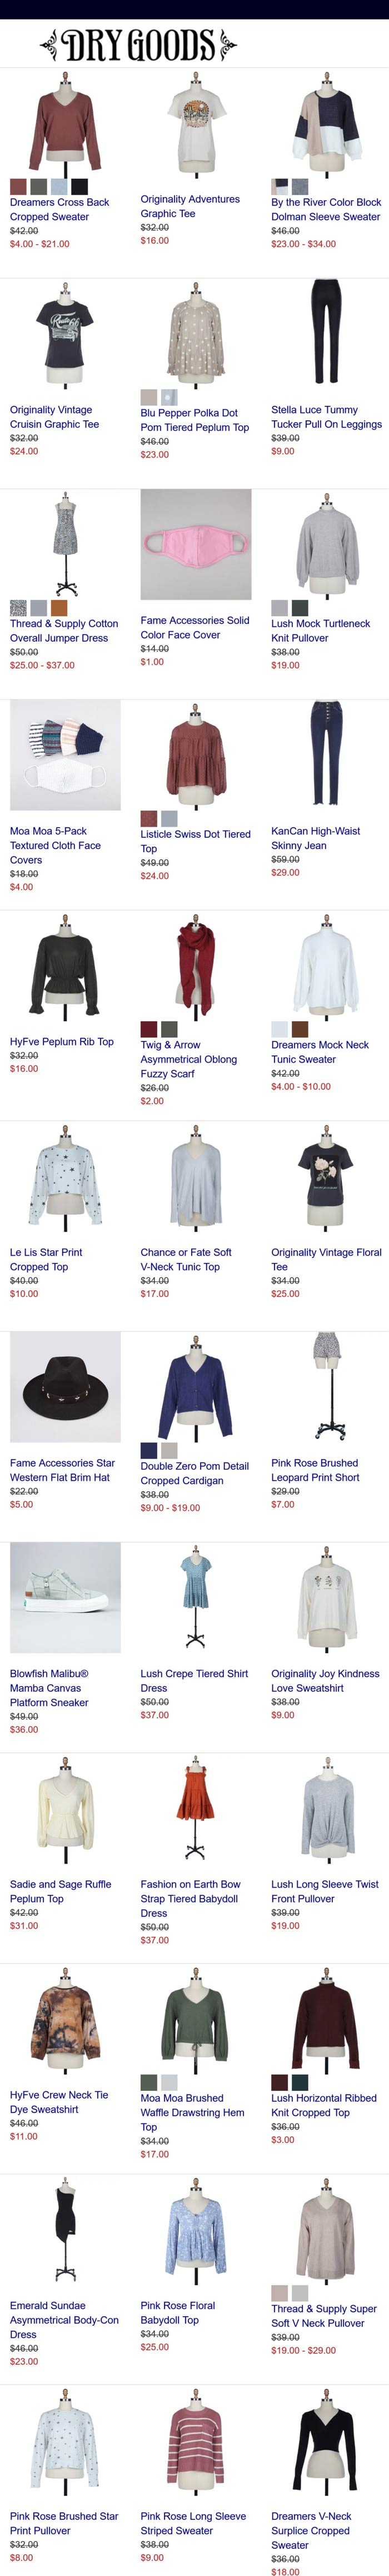 Dry Goods stores Coupon  50-80% off sale going on at Dry Goods, ditto online #drygoods